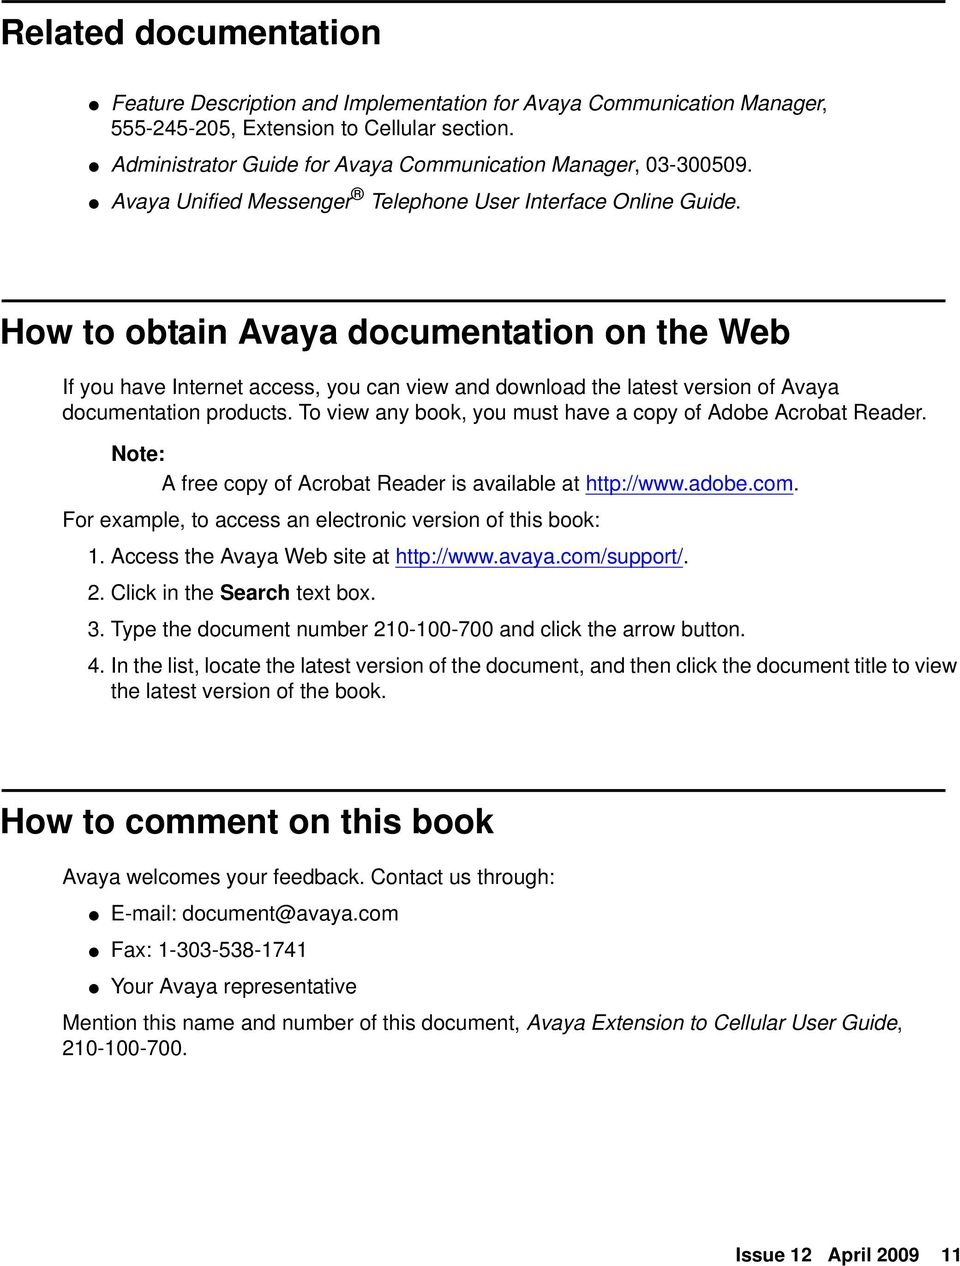 How to obtain Avaya documentation on the Web If you have Internet access, you can view and download the latest version of Avaya documentation products.